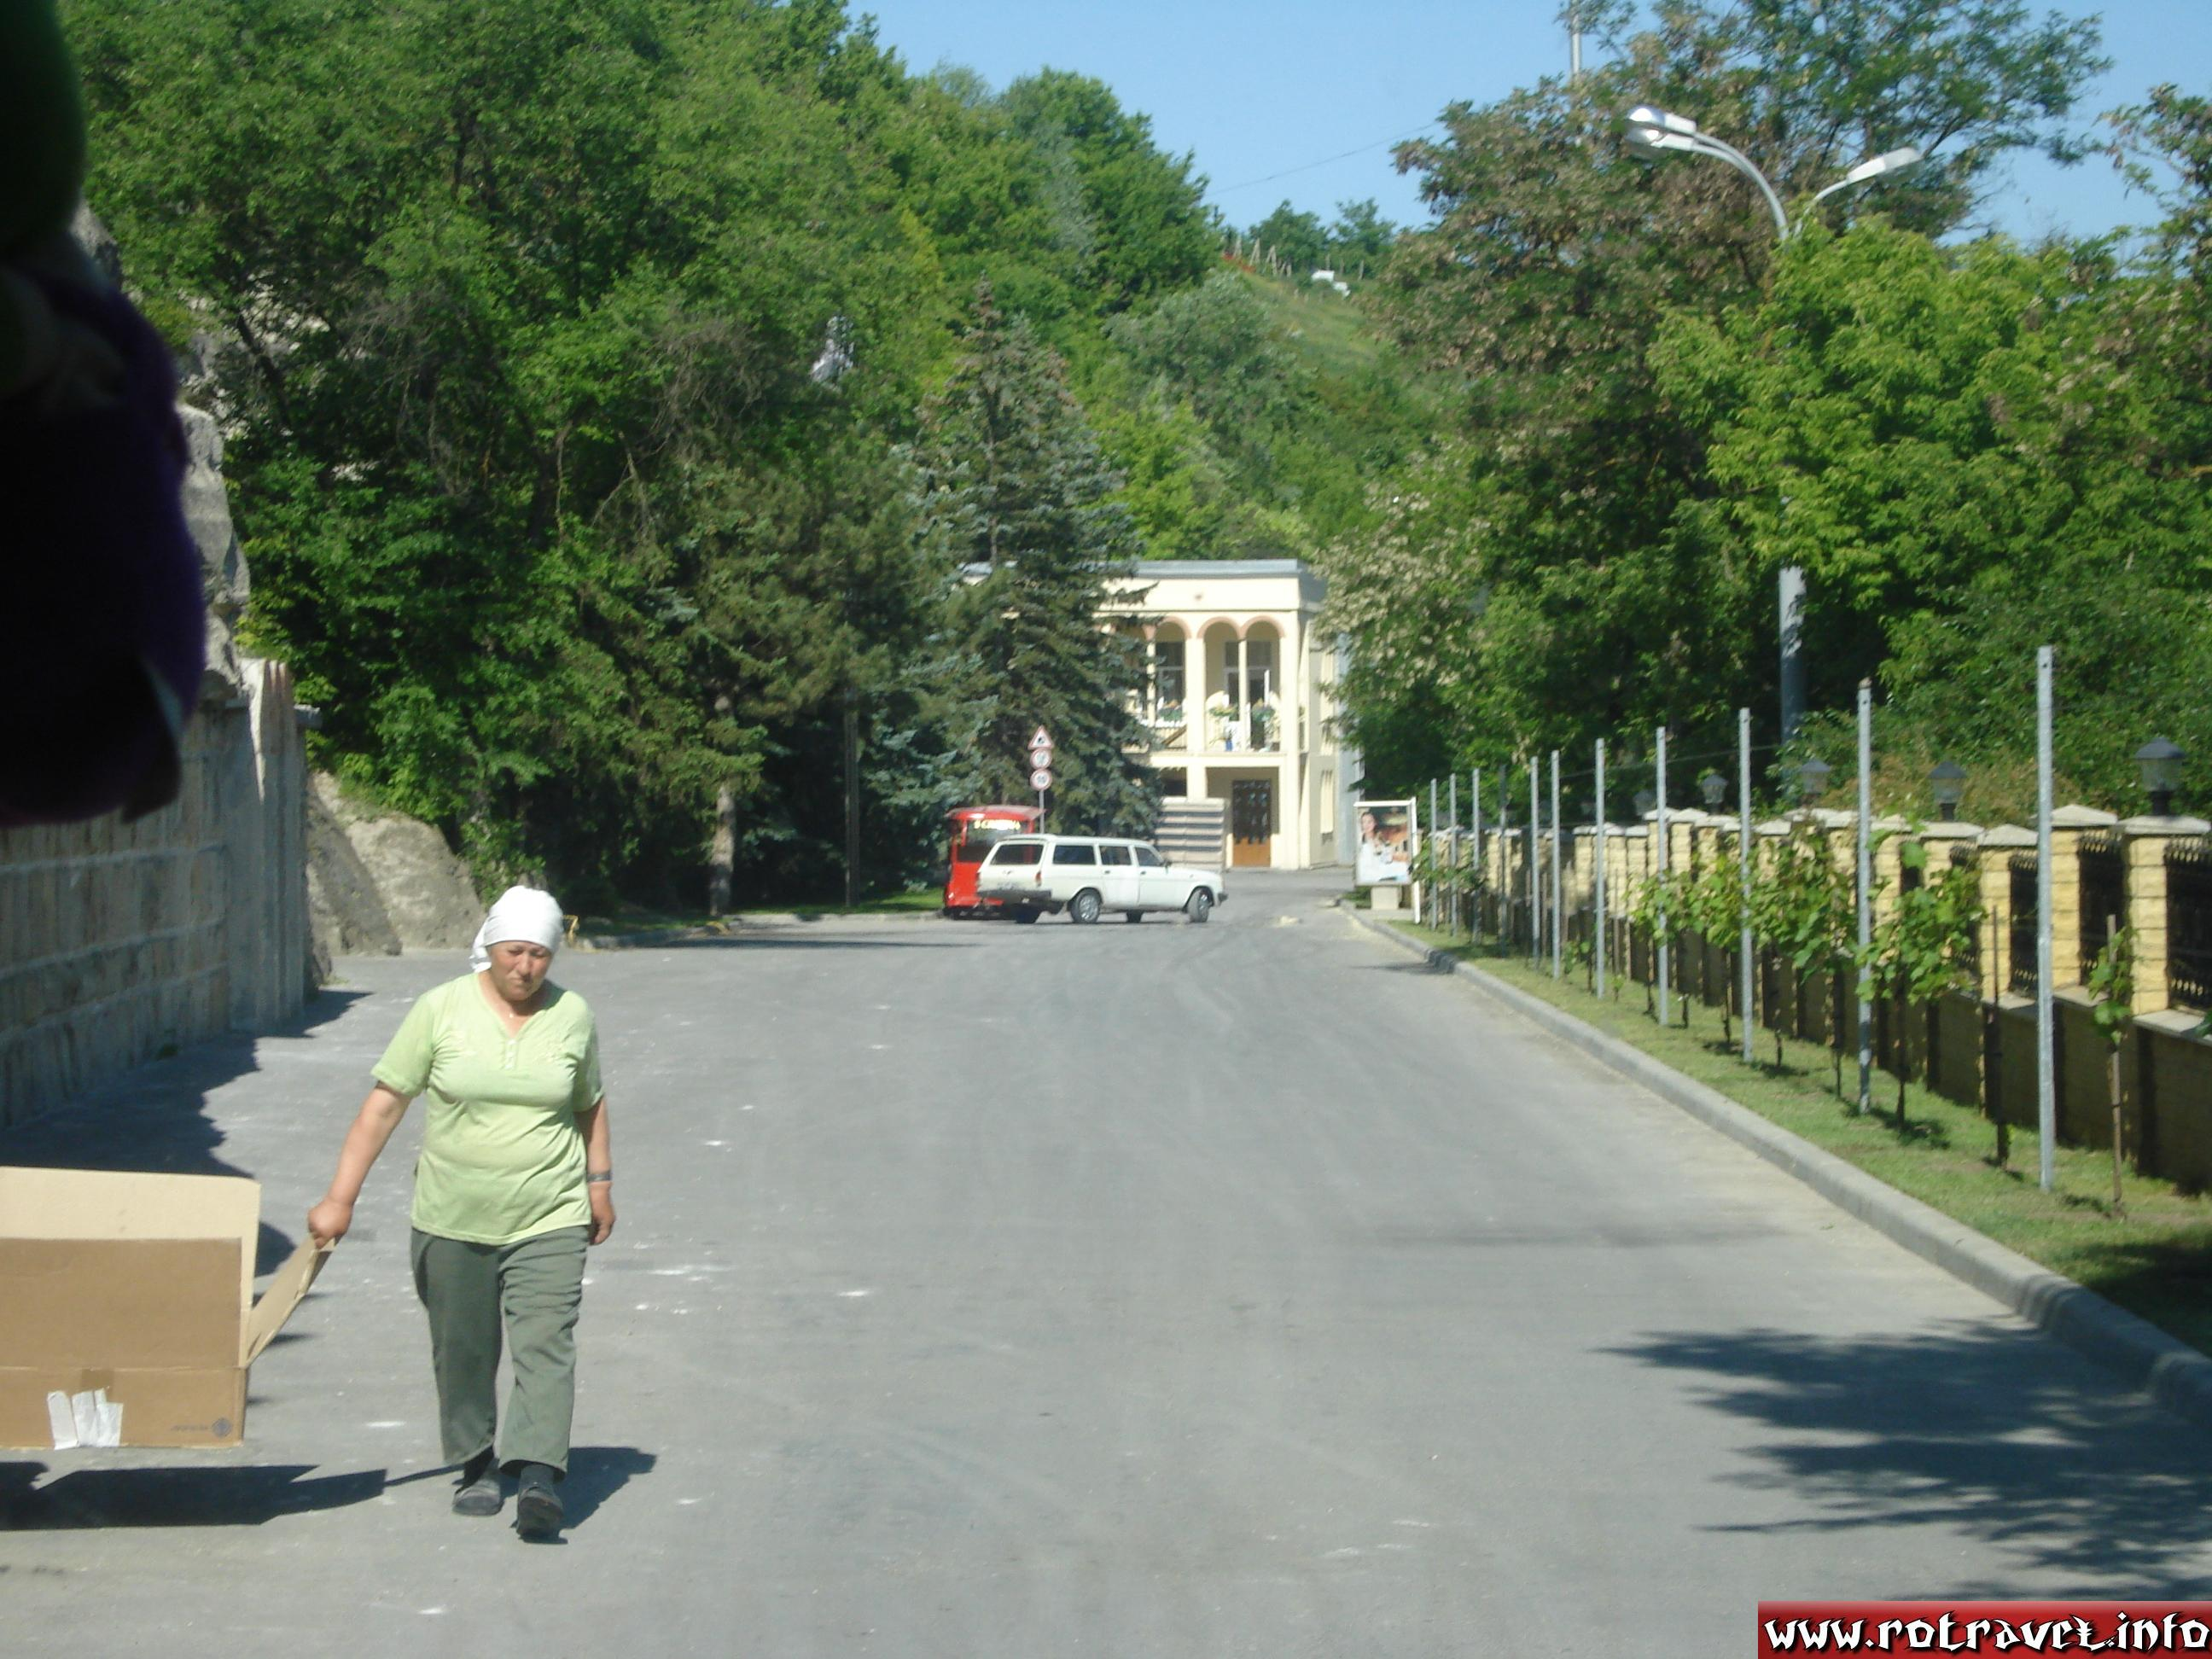 First view of the road which leads us to the Cricova's cellar.